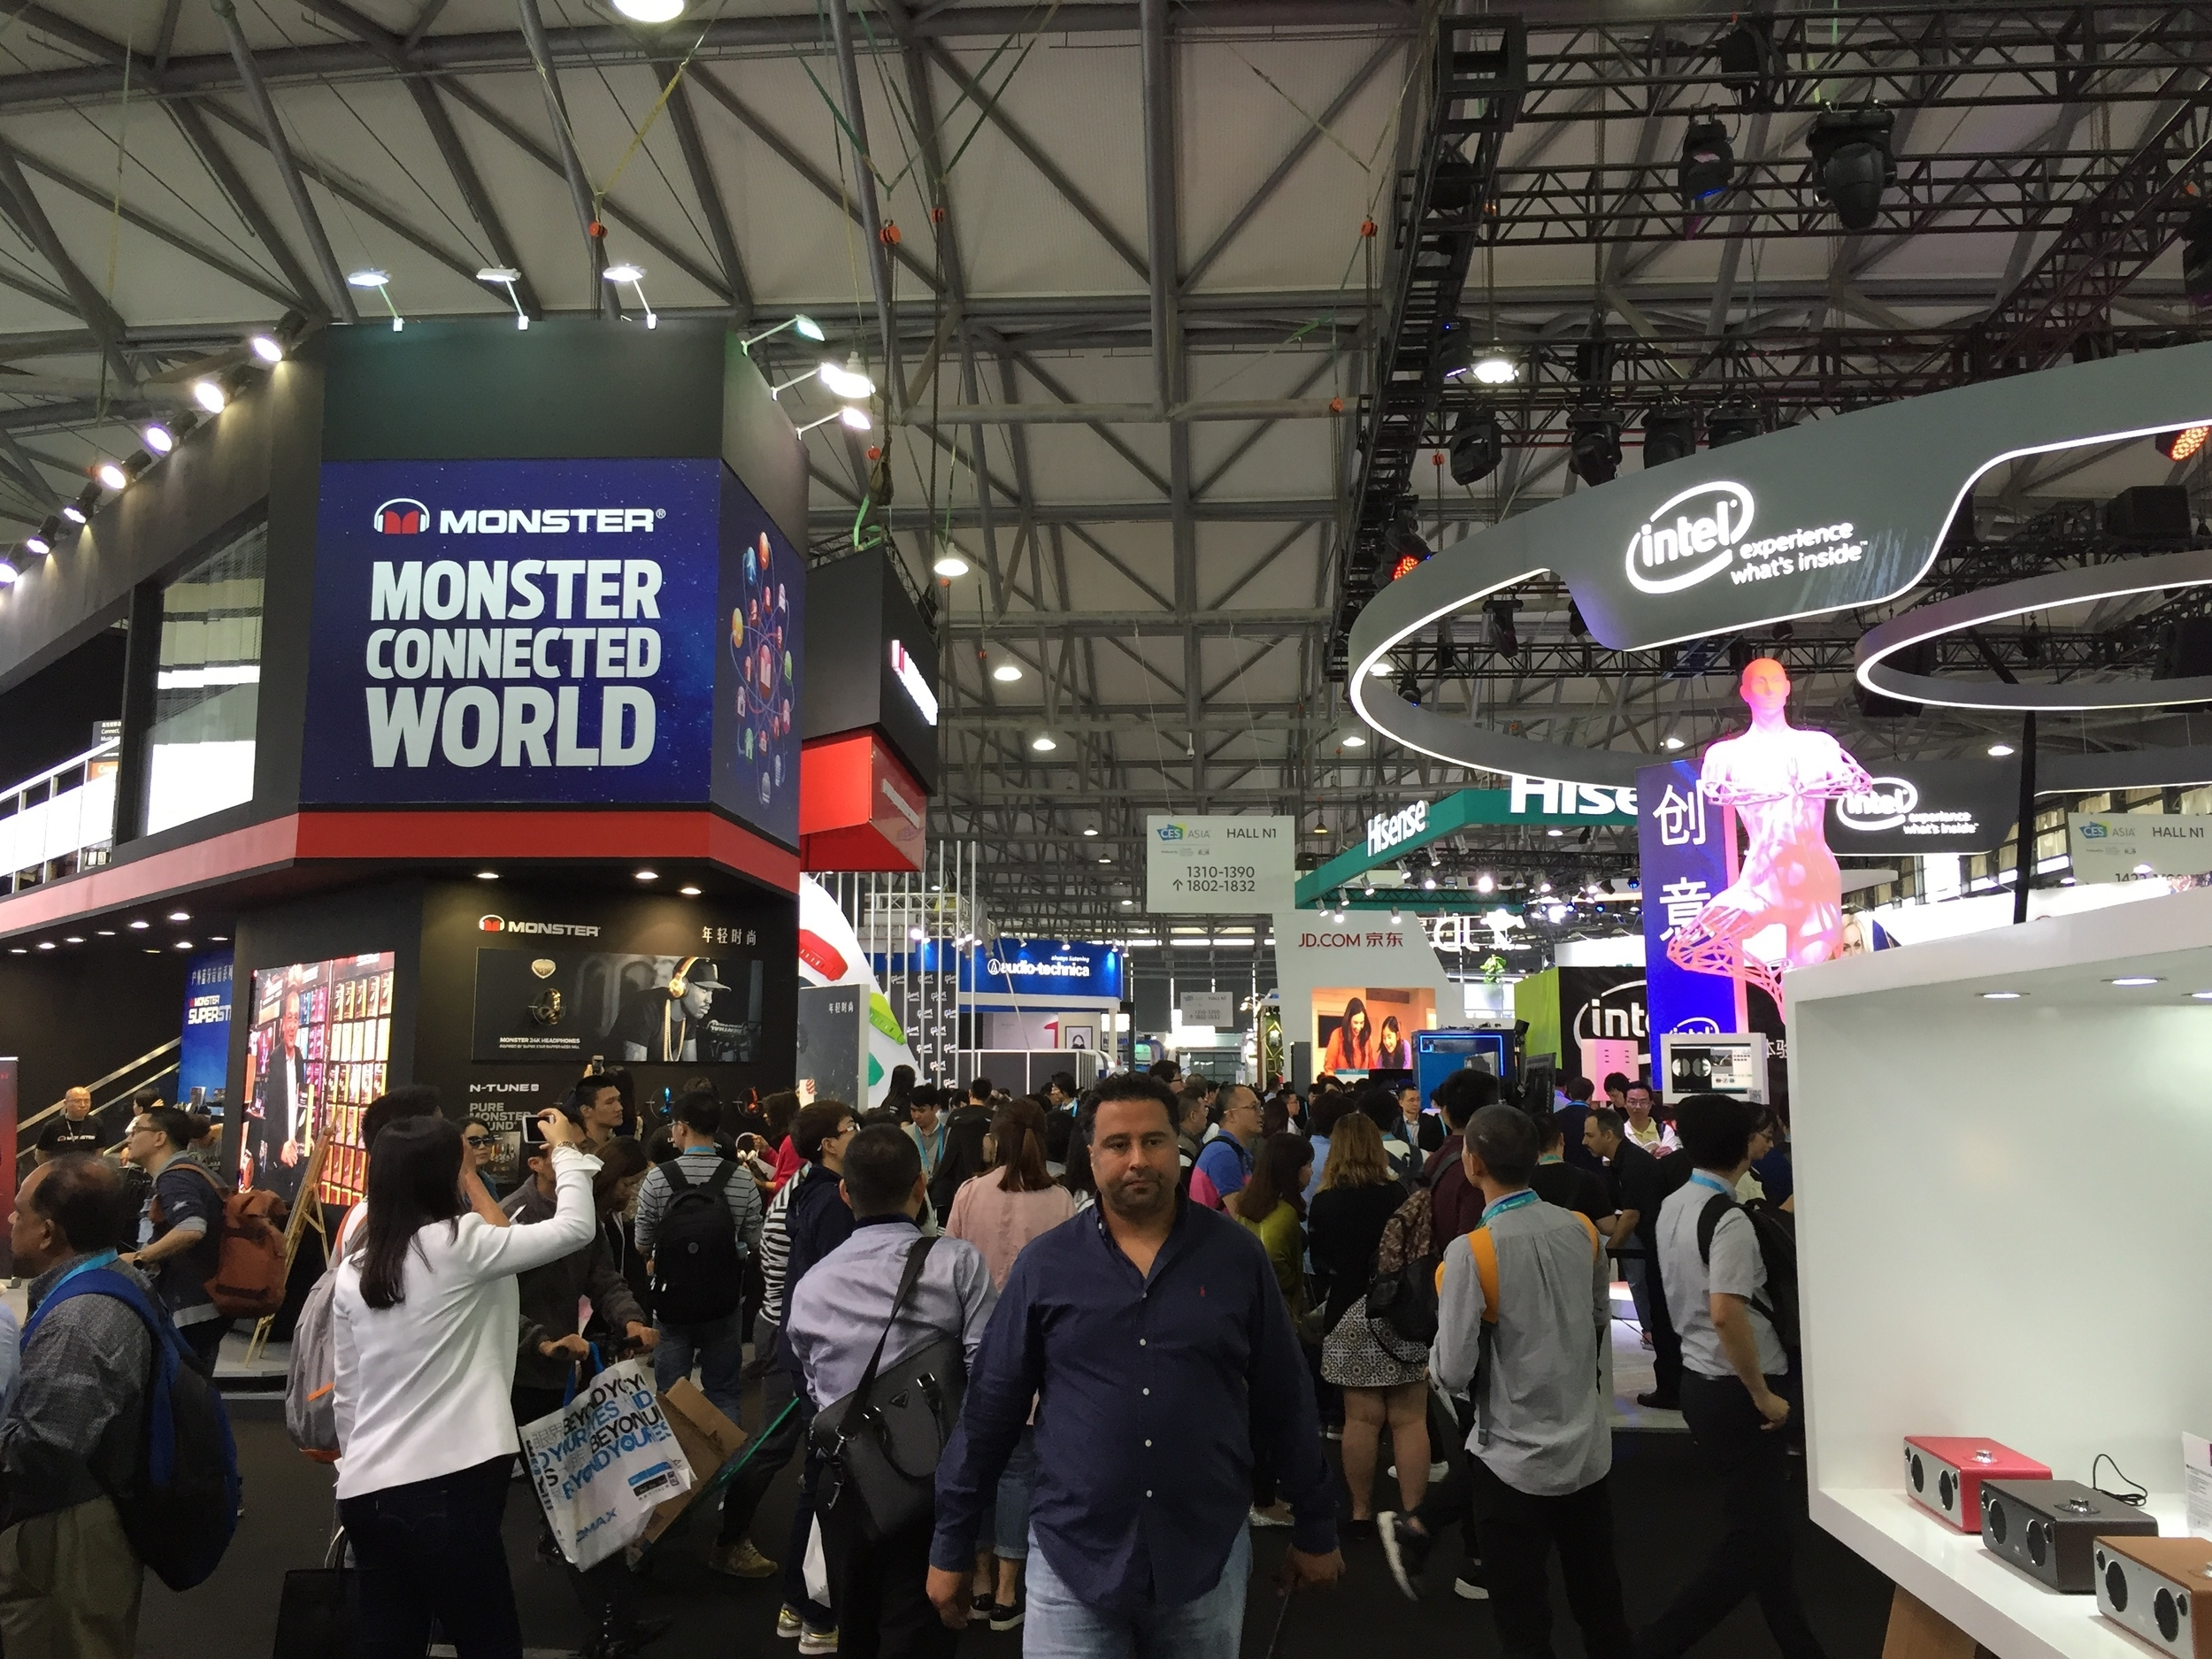 Many innovations and tech savvy – in the back the massive booth of Intel